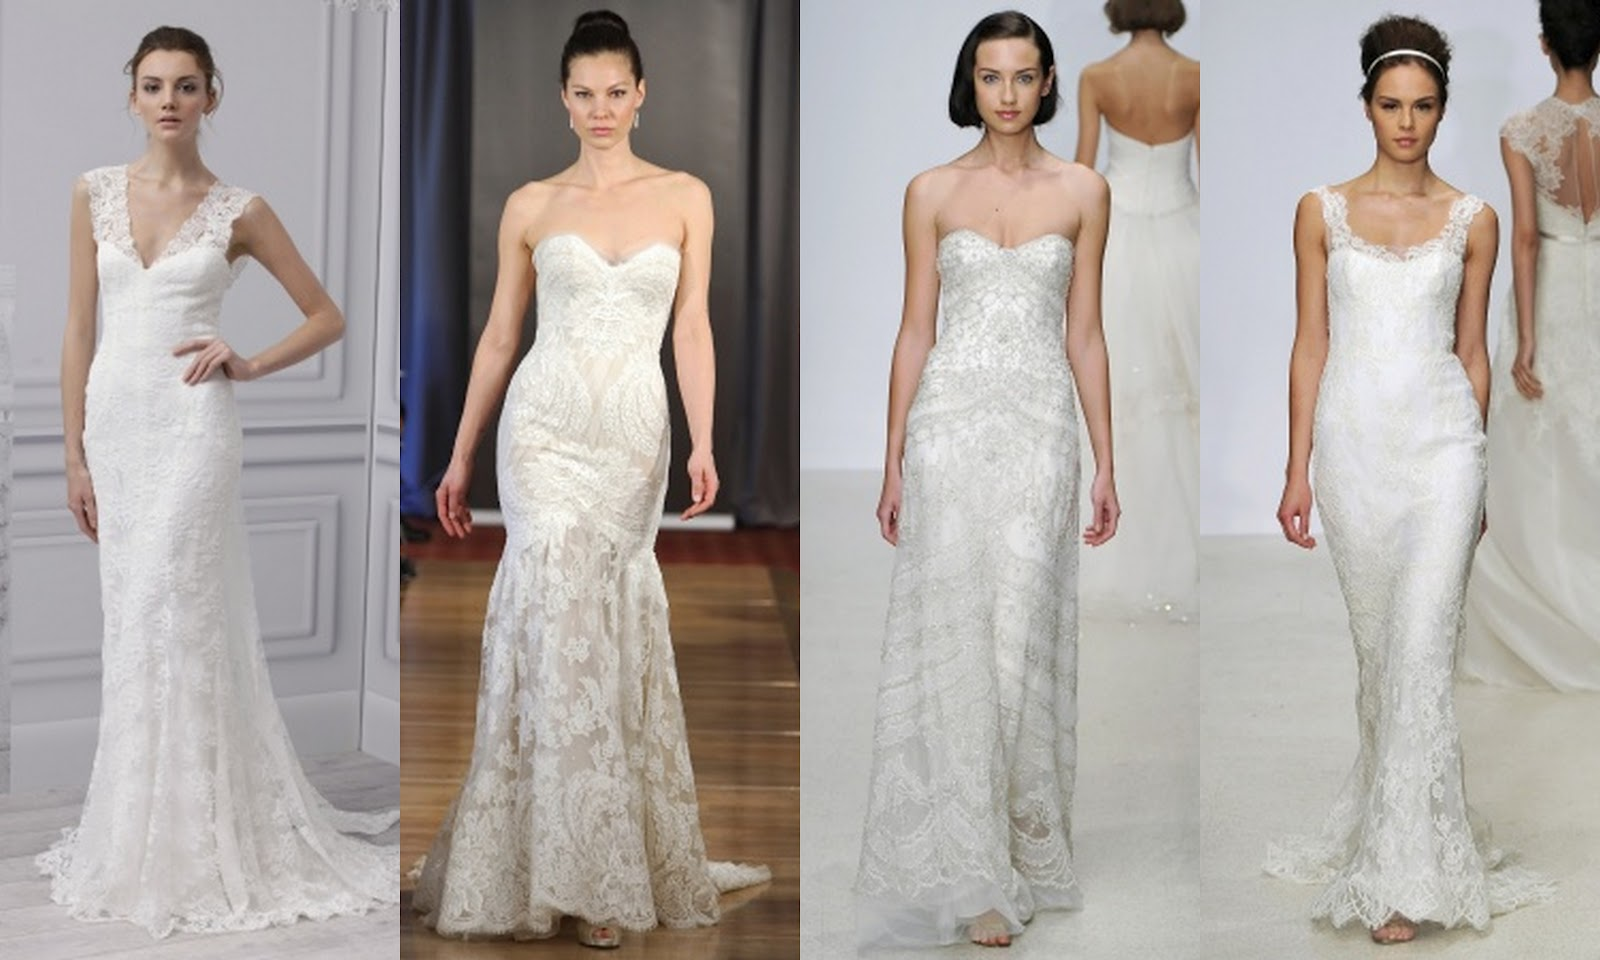 Lace Wedding Gowns: De Lovely Affair: Top 10 Wedding Dress Trends For 2013